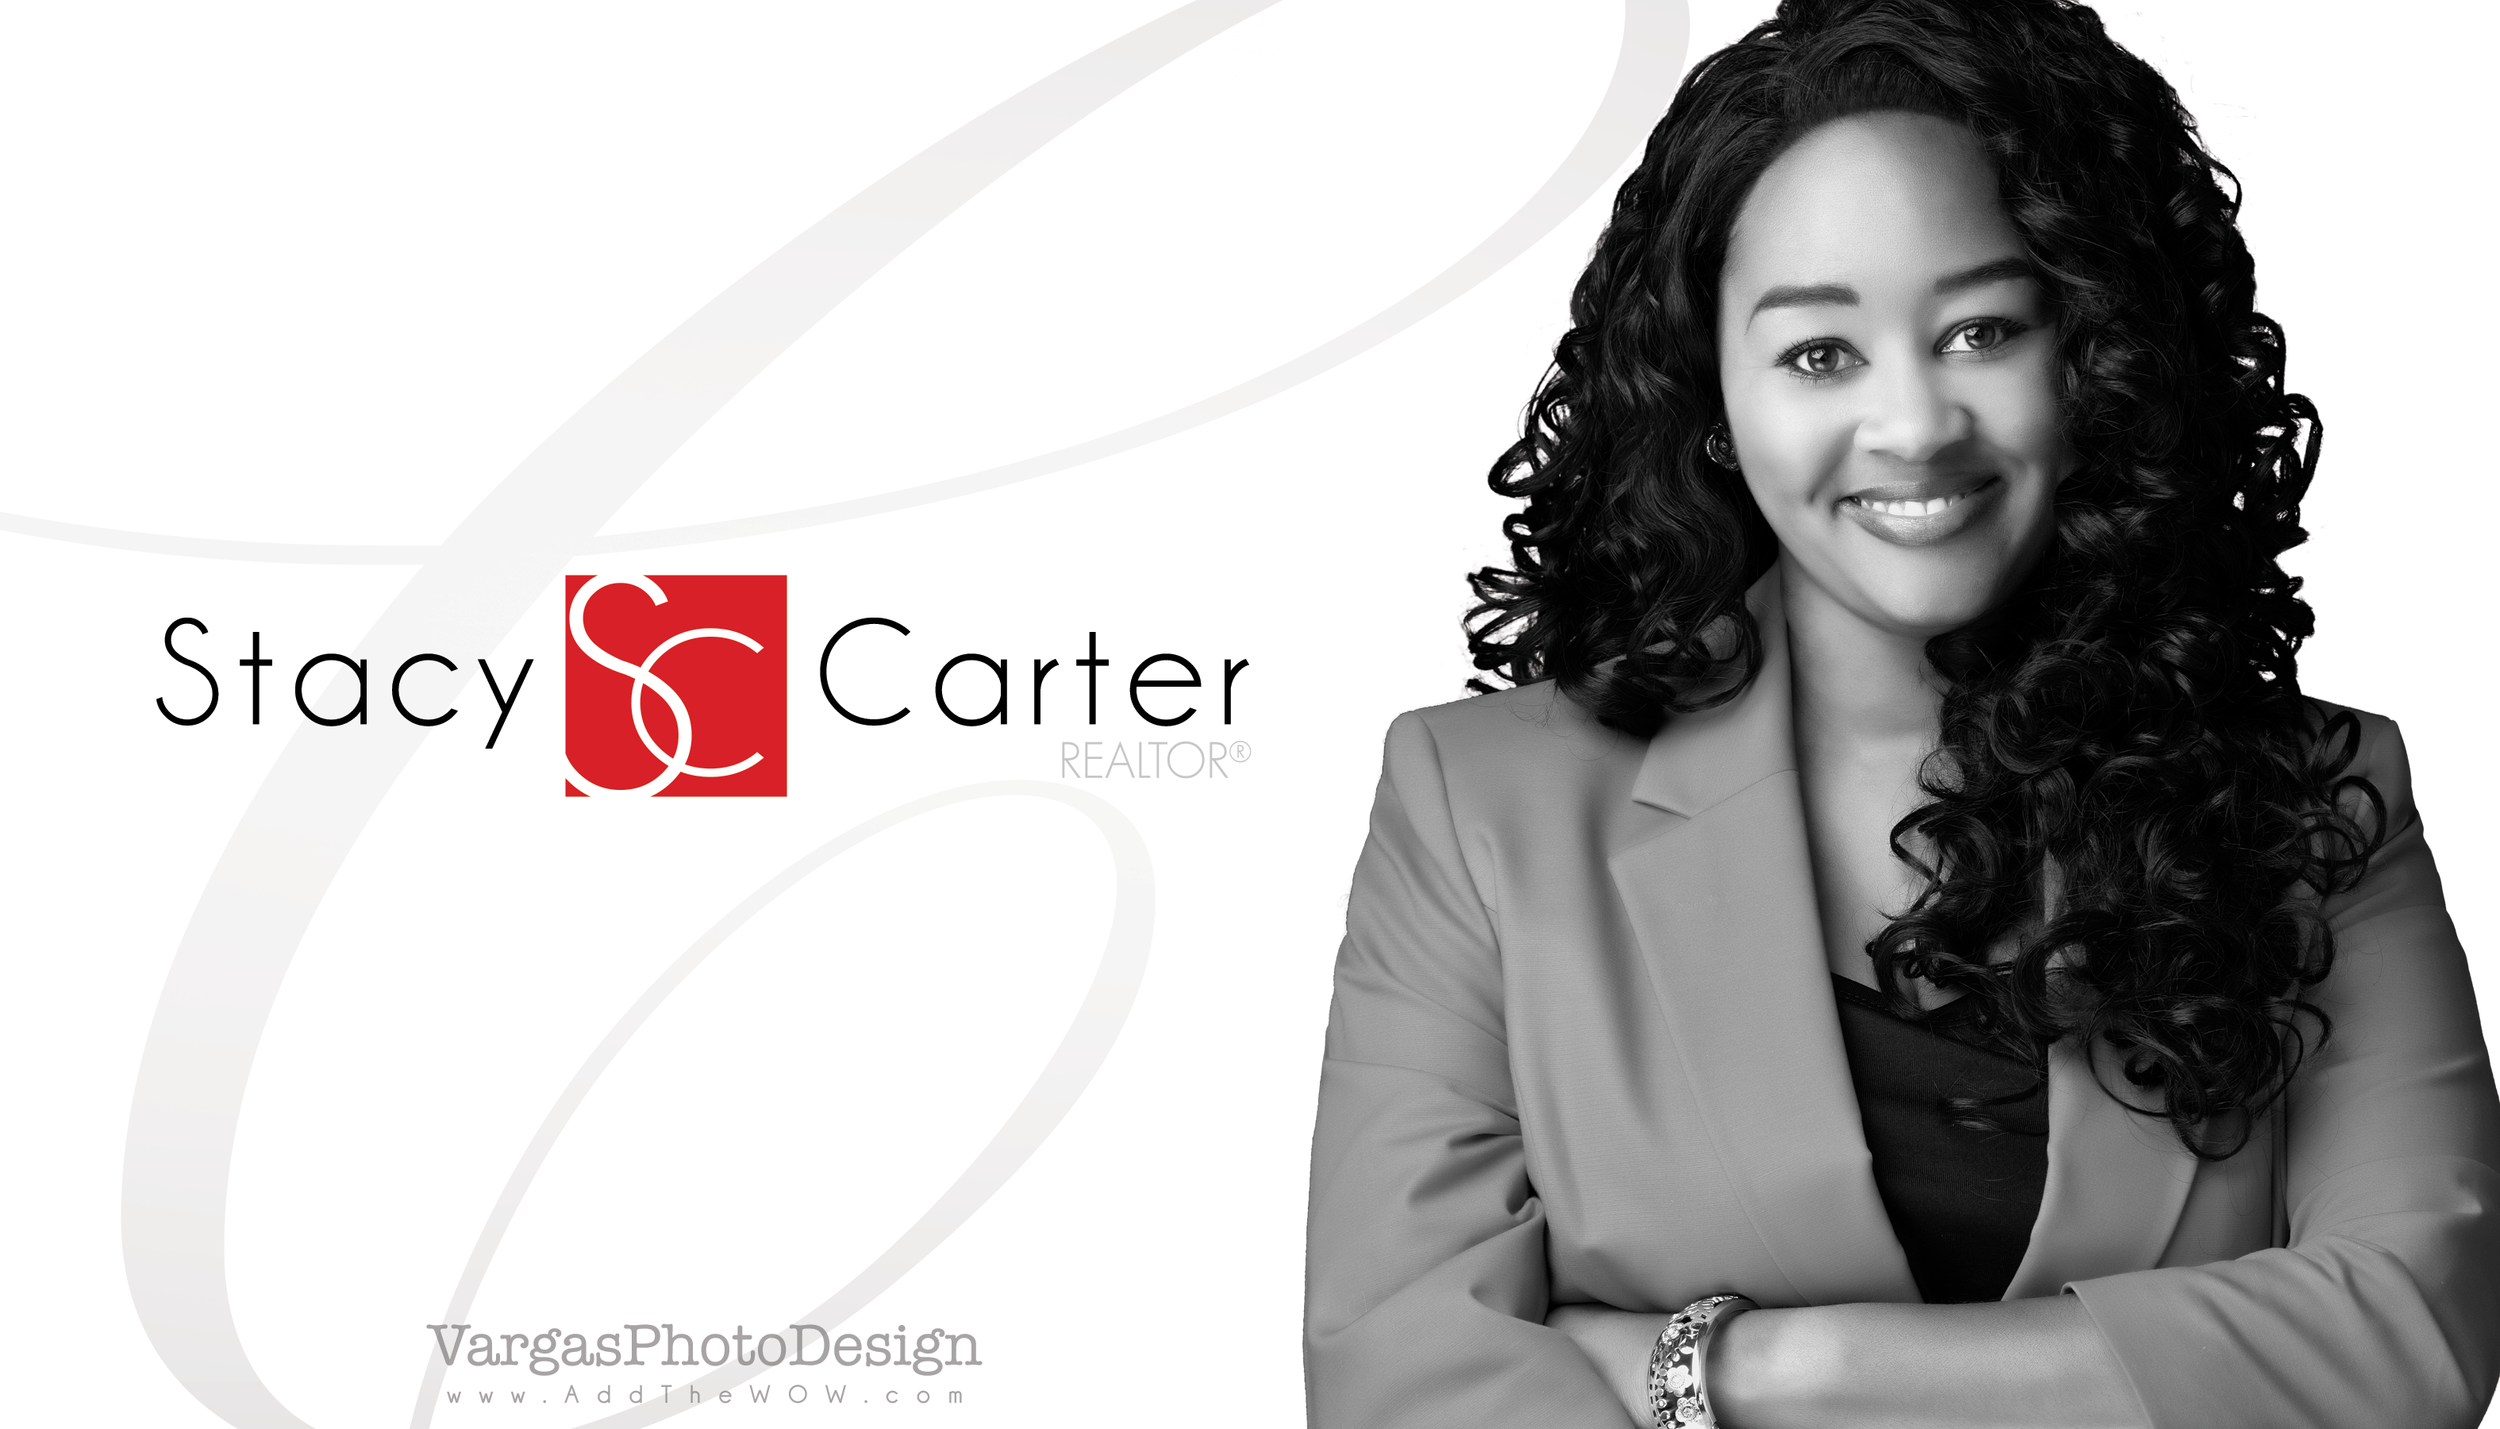 Stacy-Carter-Realtor-Branding-by-Vargas.png